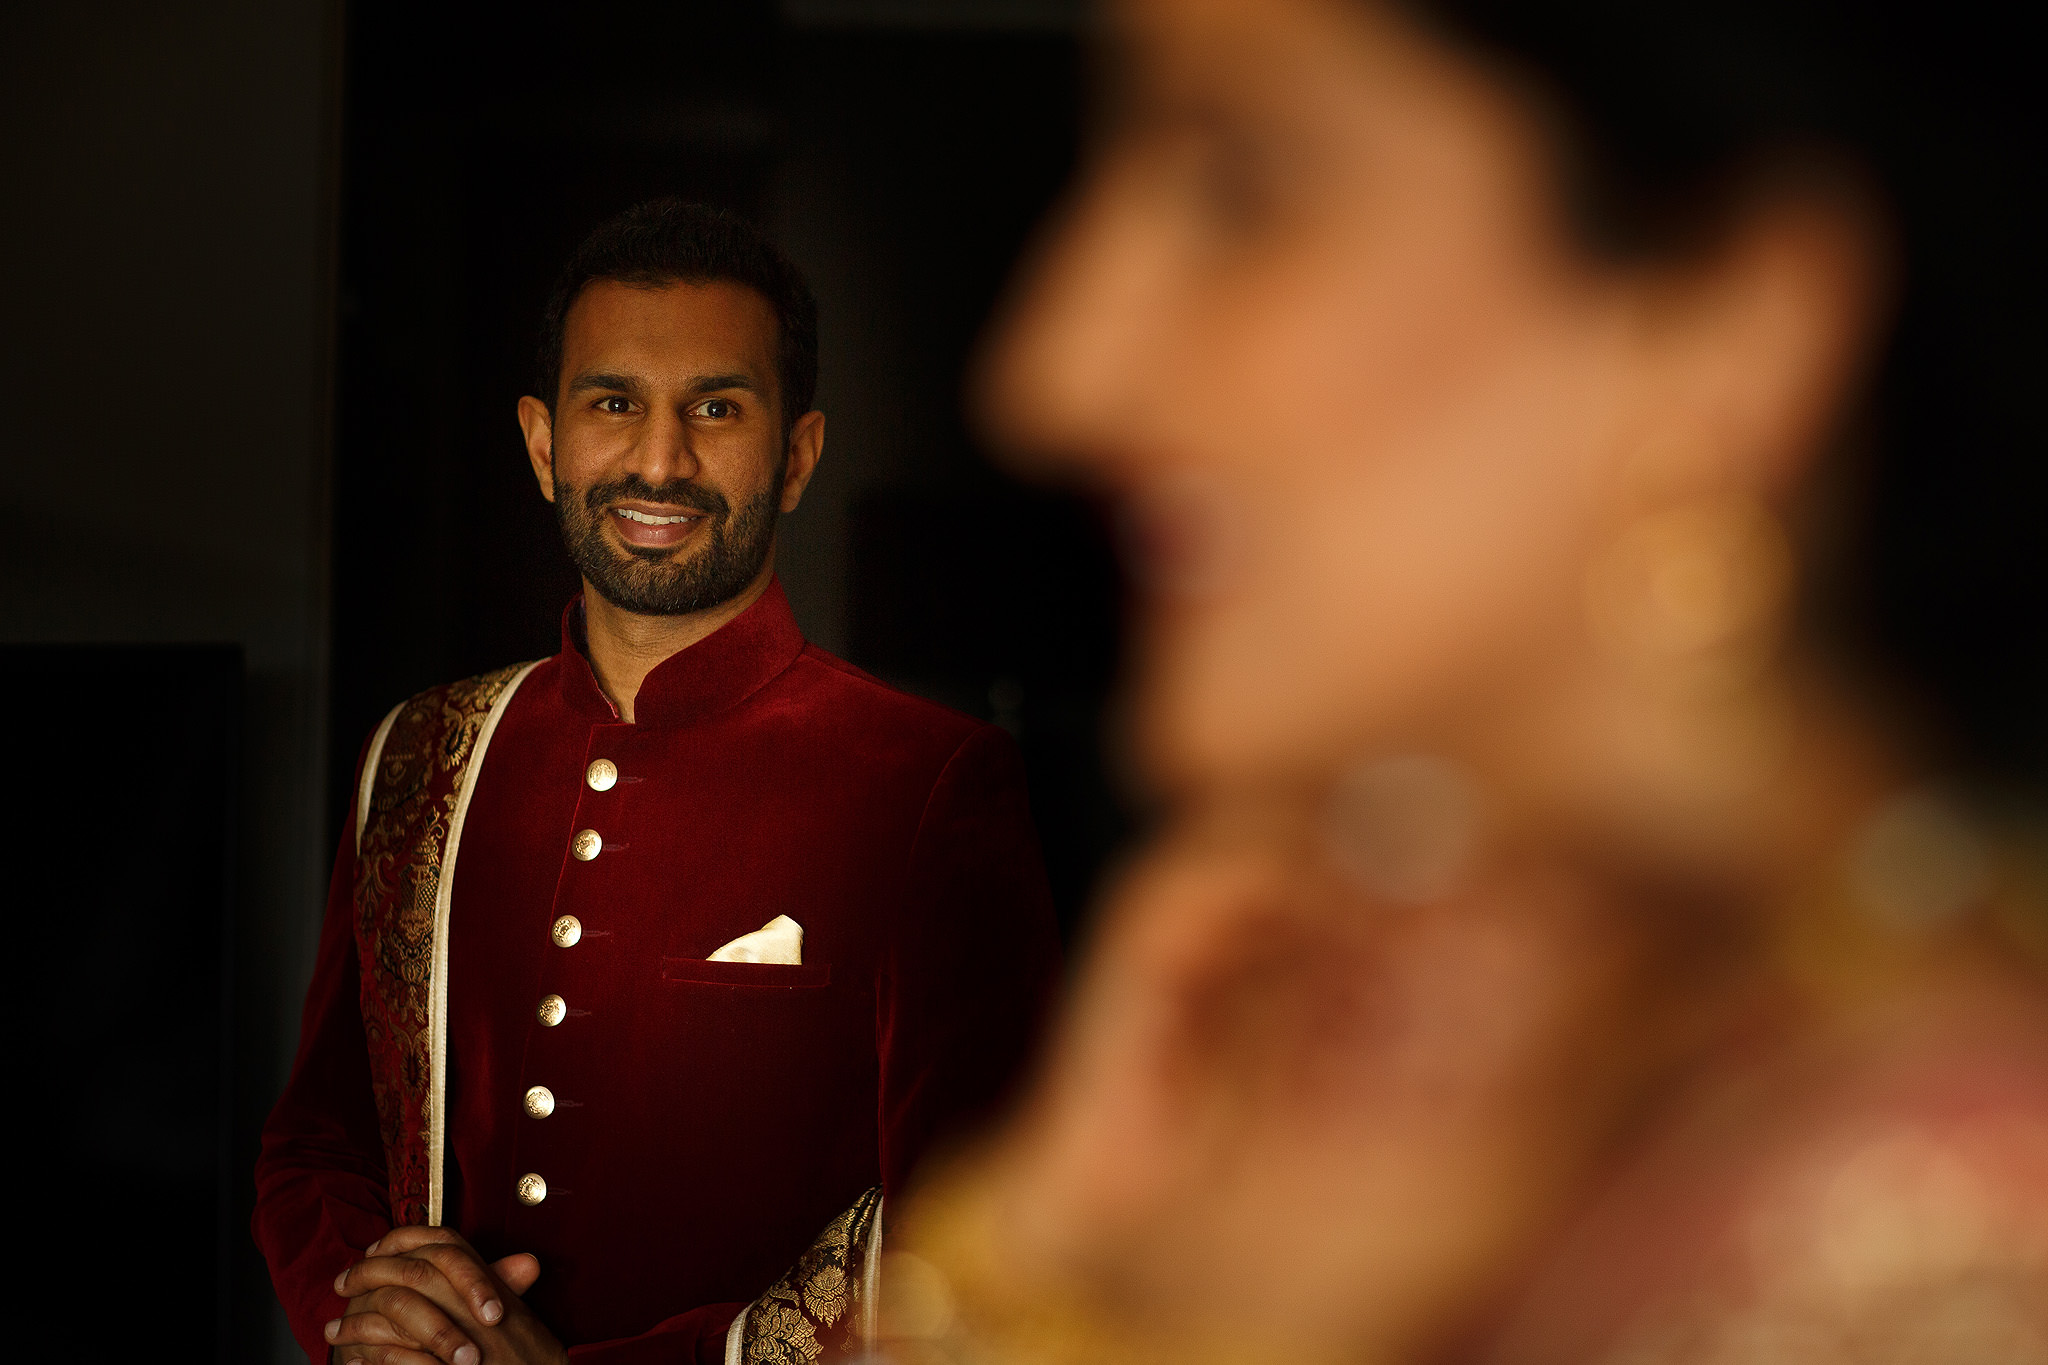 Indian groom looking at bride as she makes finishing touches